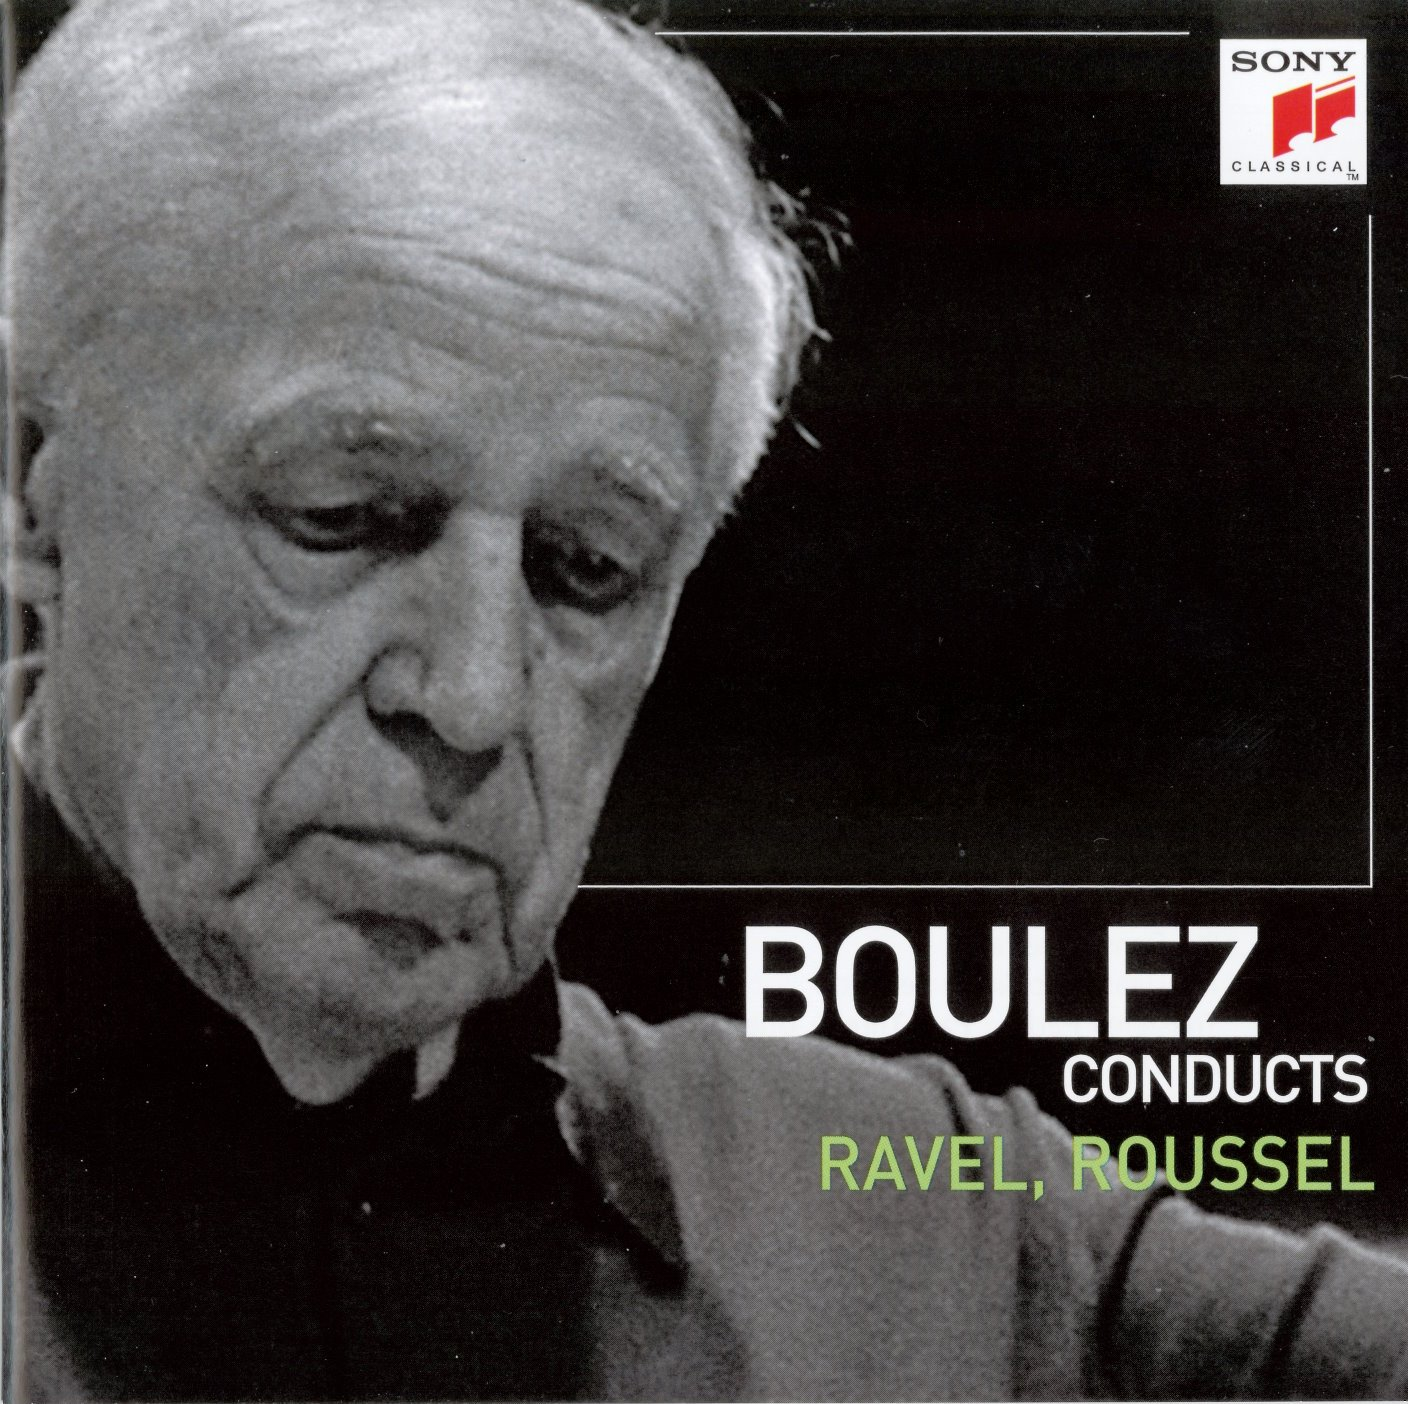 Pierre Boulez Boulez Conducts BBC Symphony Orchestra Three Pieces For Orchestra - Chamber Concerto - Altenberg Lieder Op. 4